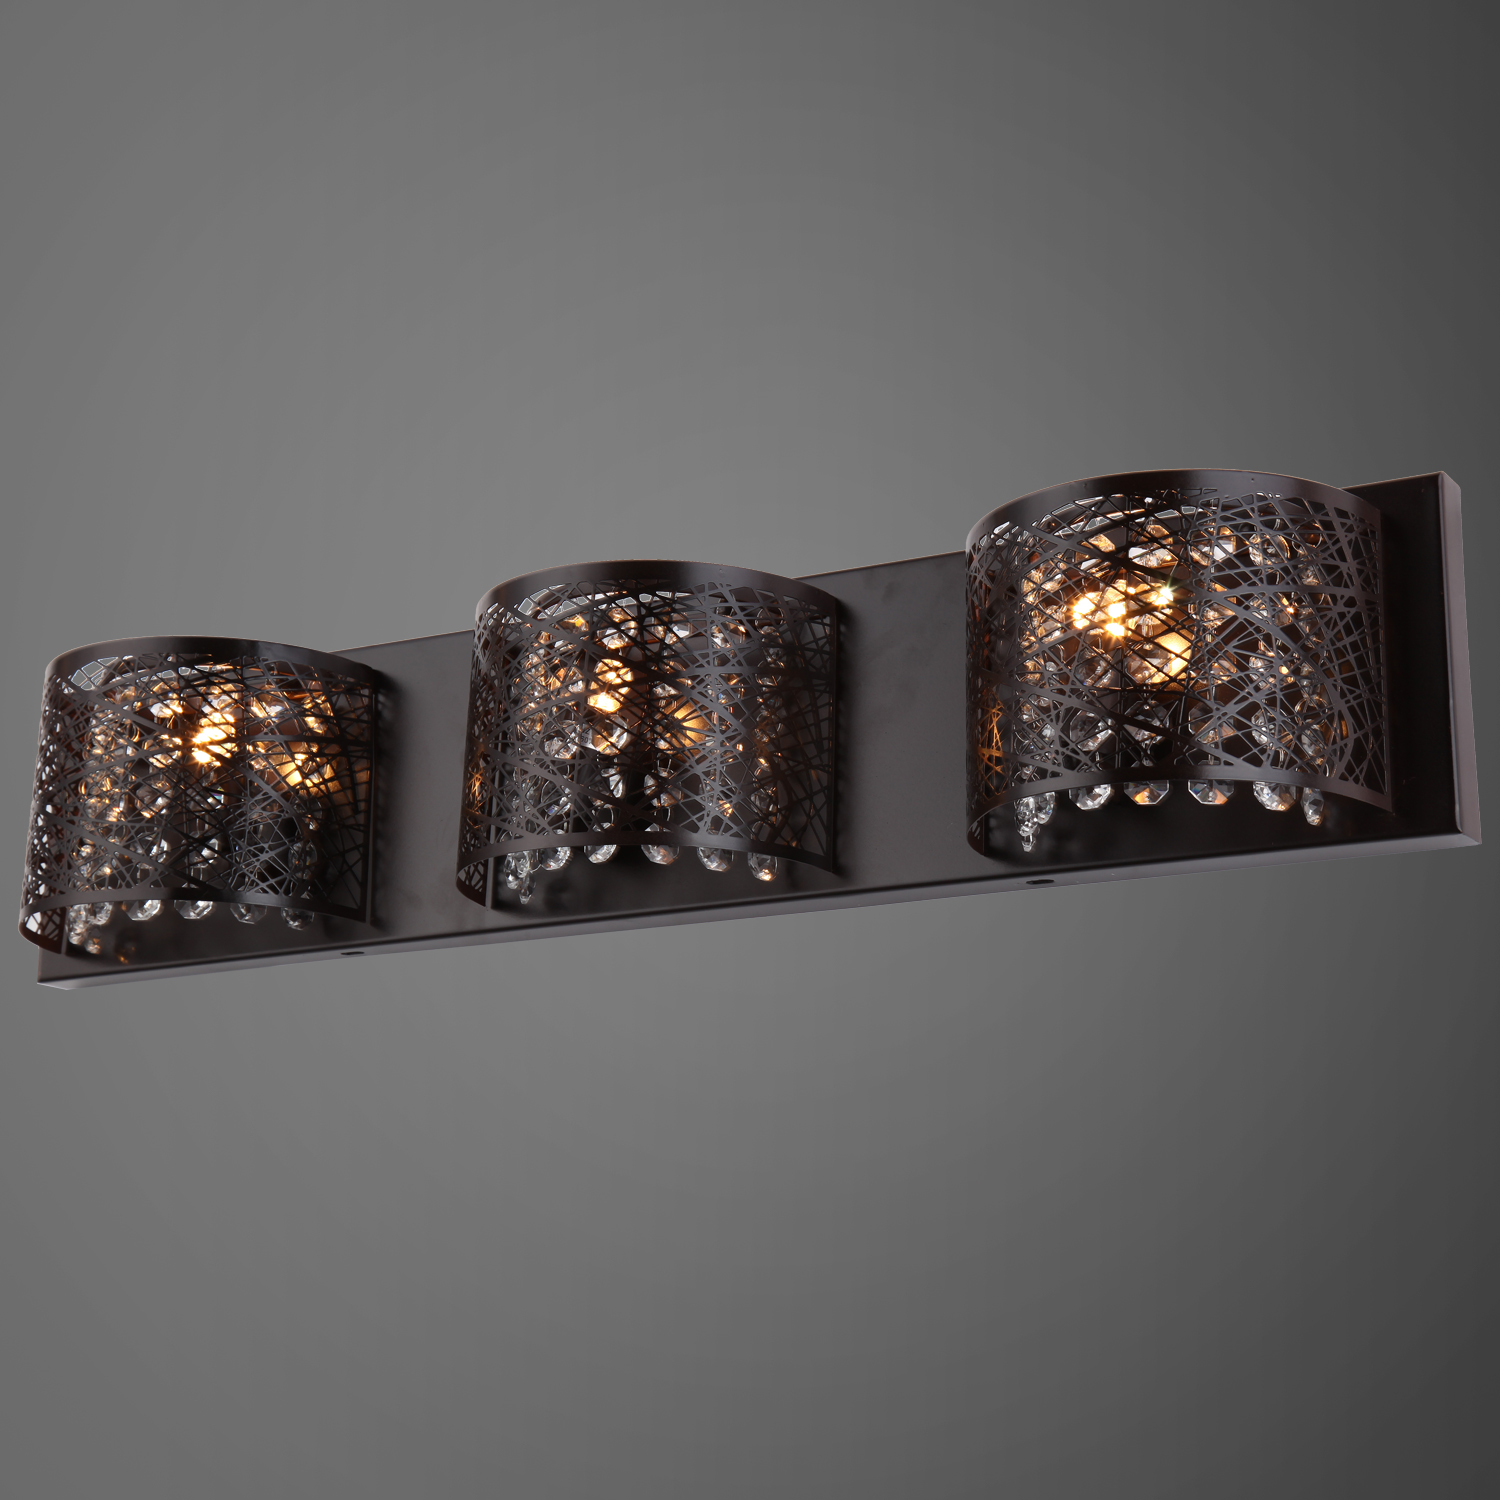 Replacement Light Shades For Wall Lights : Joshua Marshal 700856-001 Lazer 3 Light Bronze Sconce with Clear European Crystal From Lazer ...